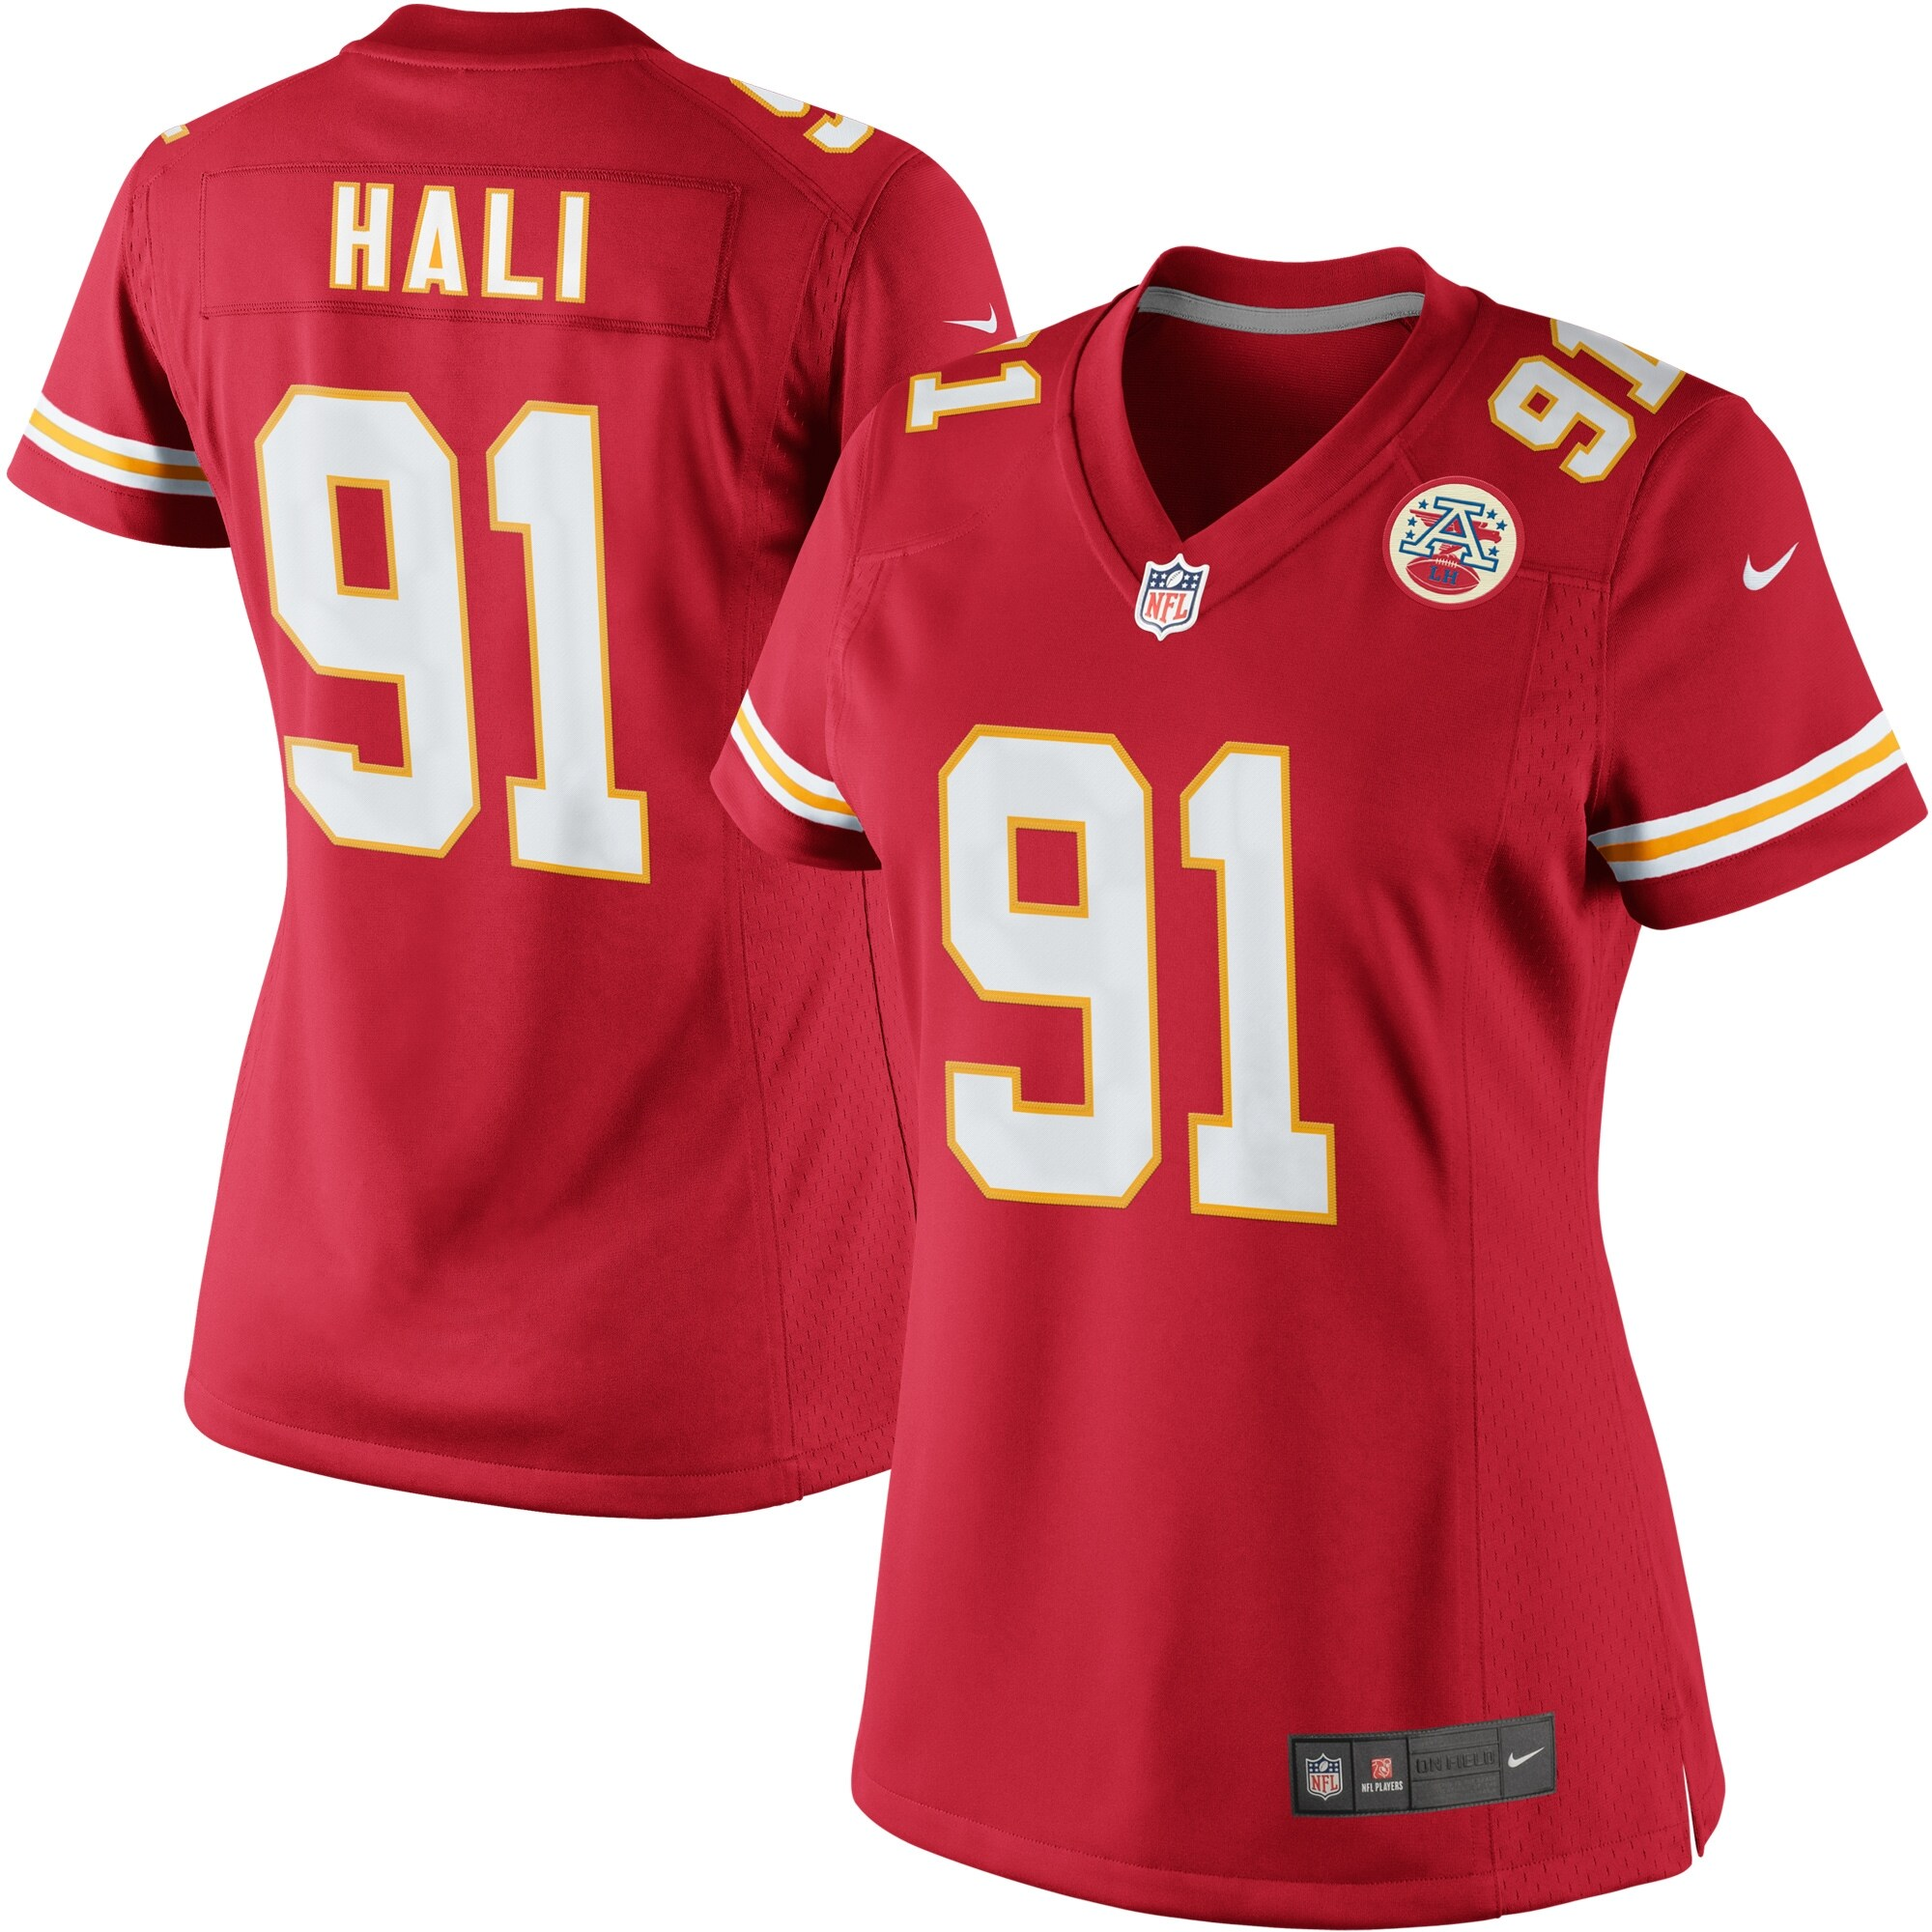 Tamba Hali Kansas City Chiefs Nike Women's Limited Jersey - Red